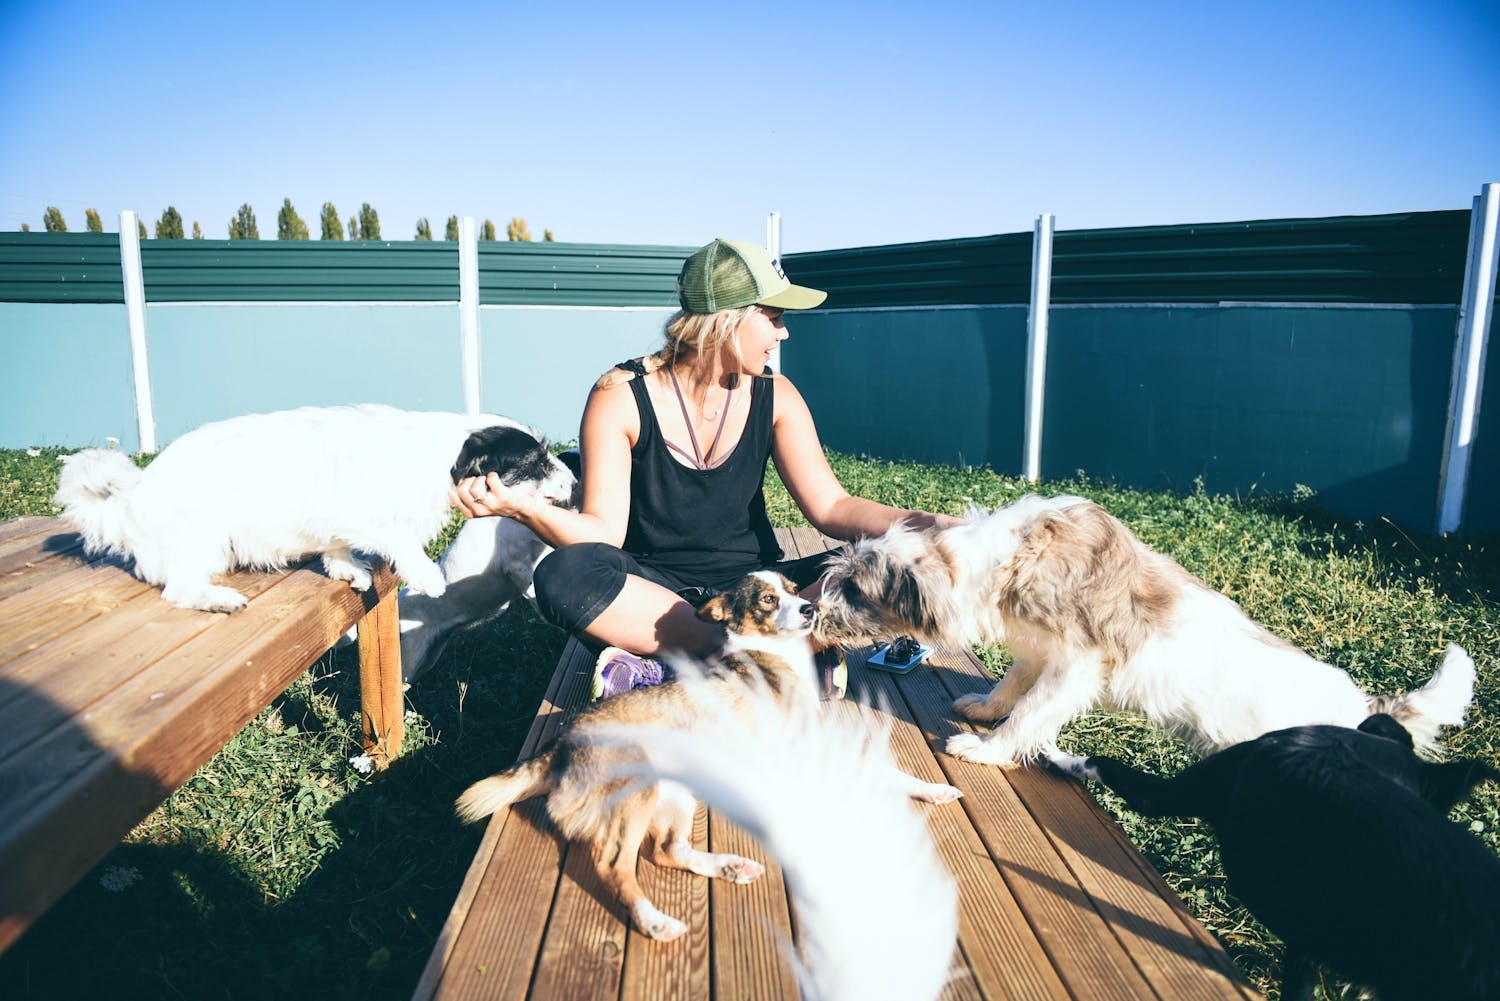 Caring with passion for dogs and animals